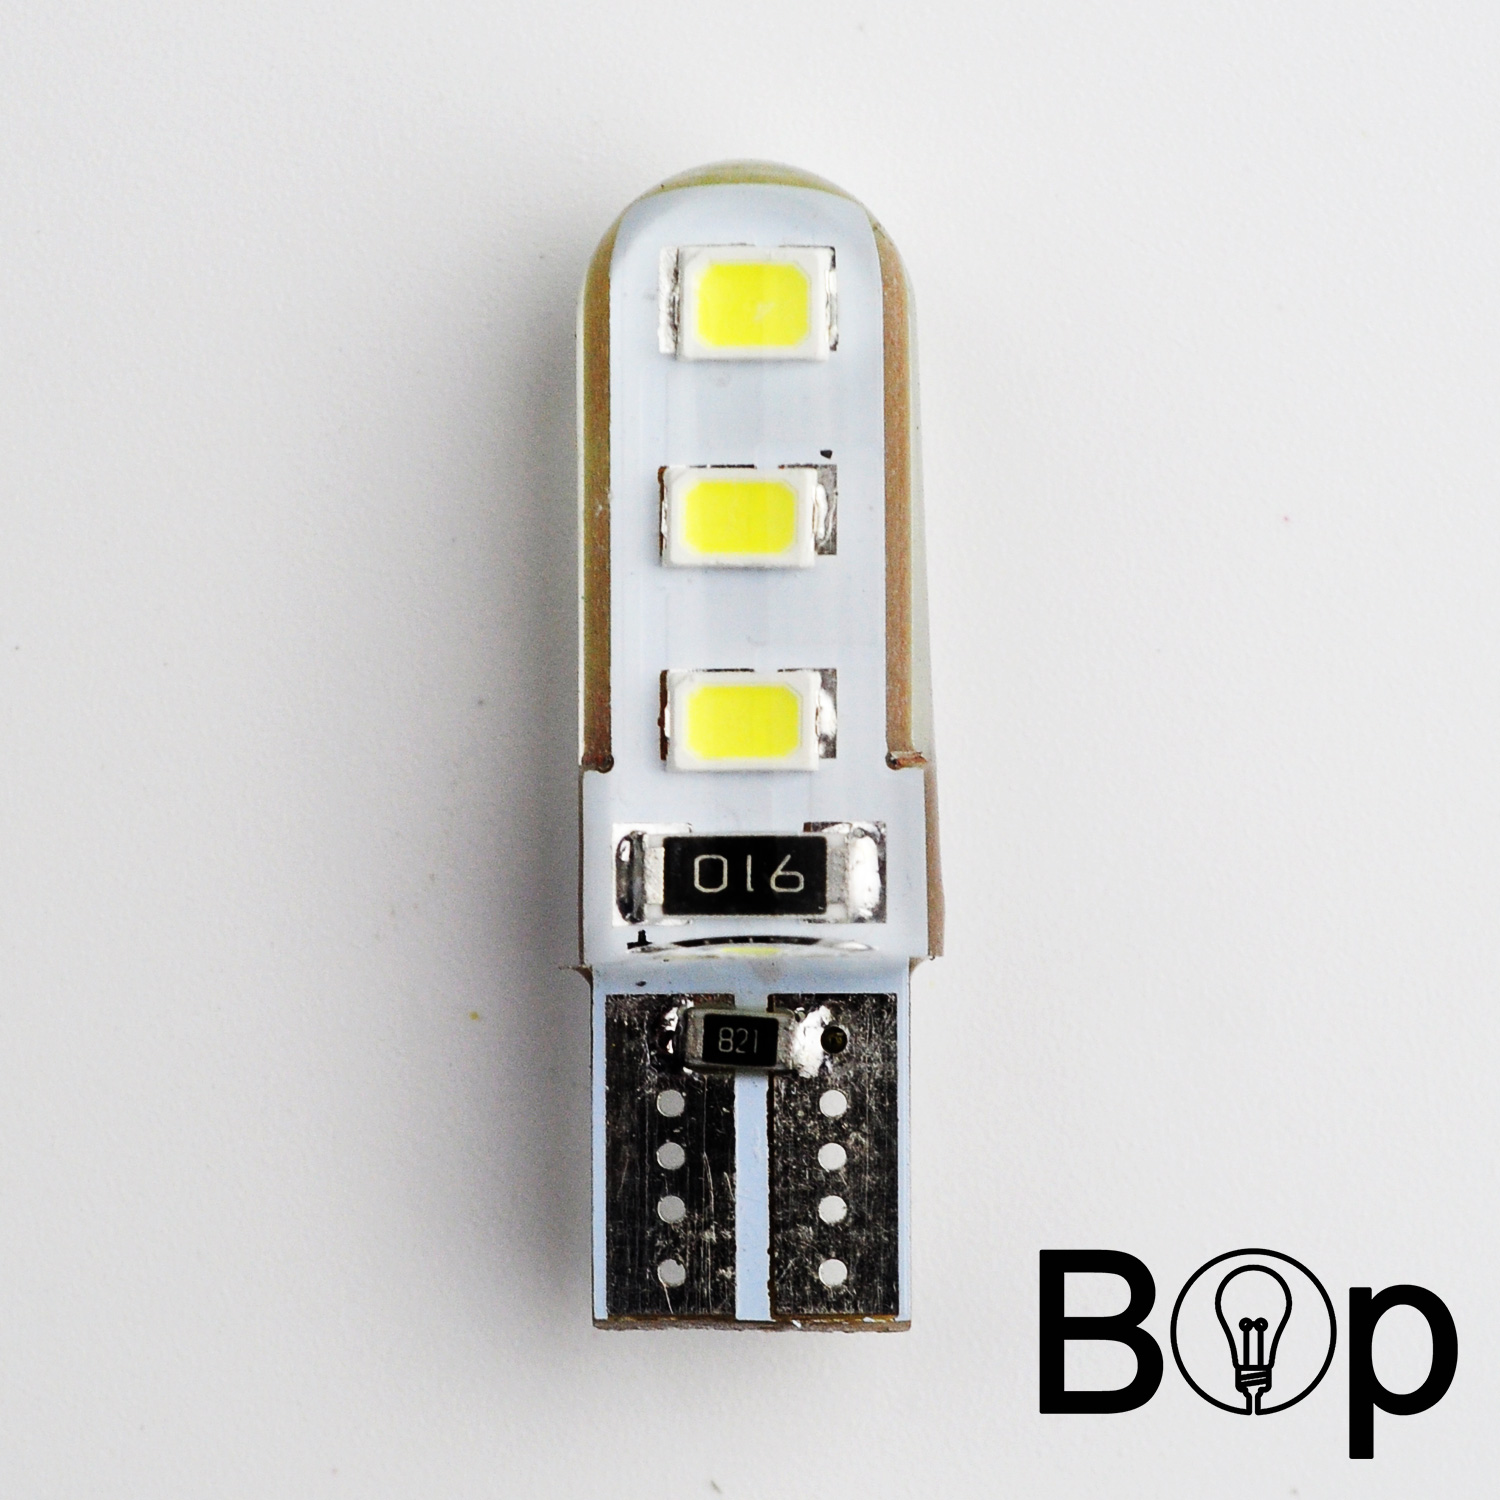 BOP New 3528 6smd COB 3W T10 Car LED Bulb W5W repuestos para luces led 194 192 158 168 921 CANBUS Parking Clearance Lamp 150MA(China (Mainland))